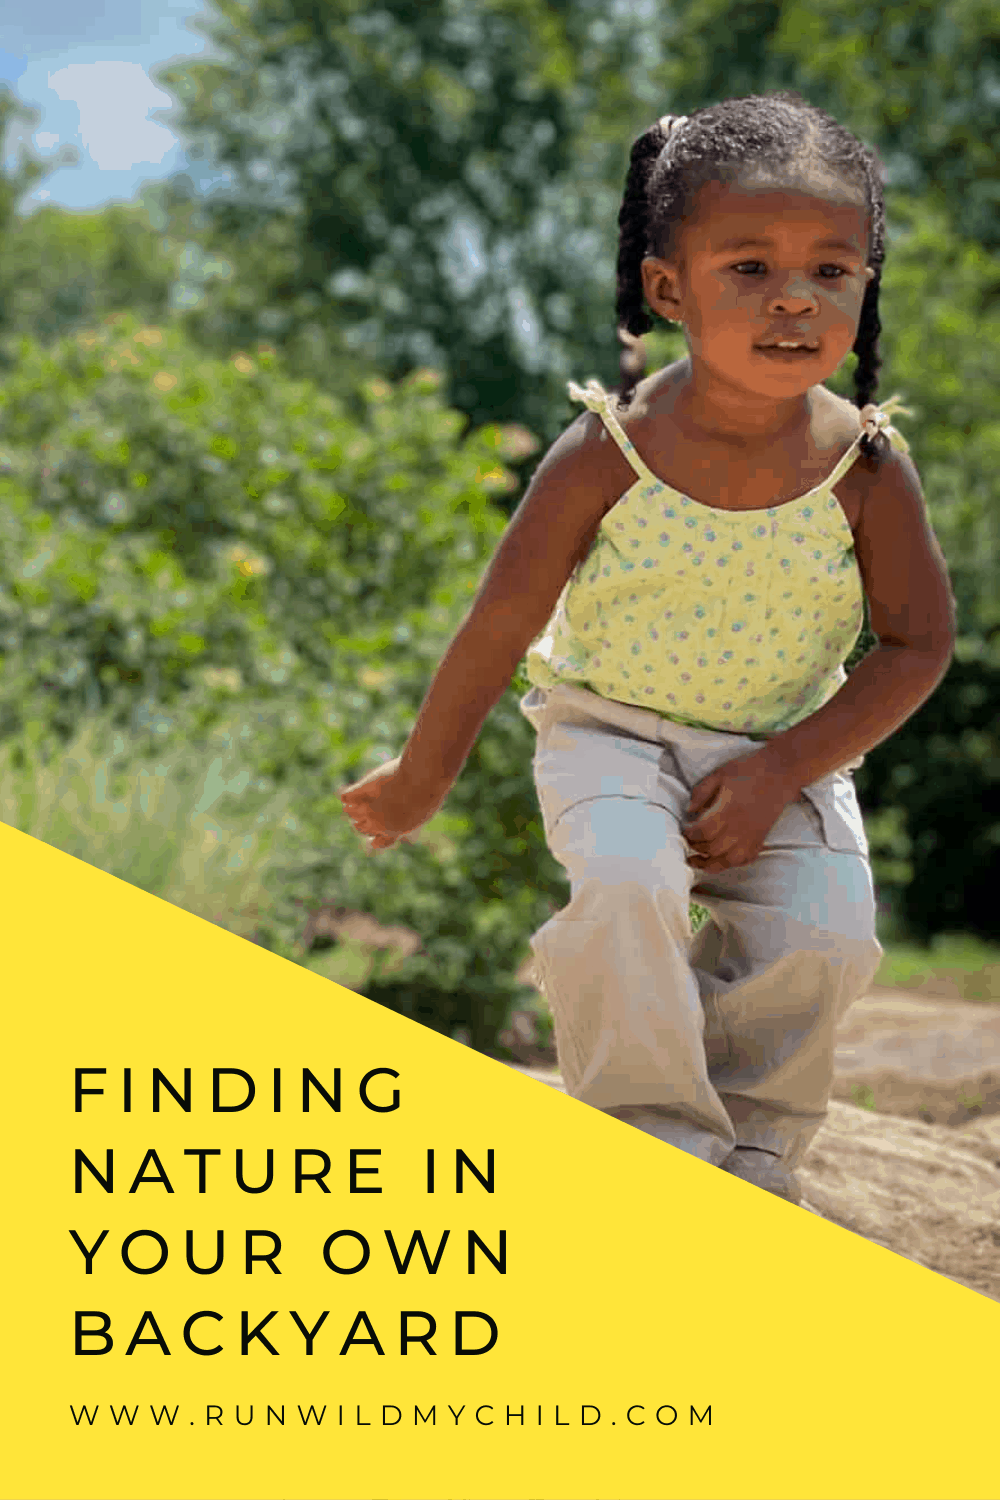 FINDING NATURE IN YOUR OWN BACKYARD